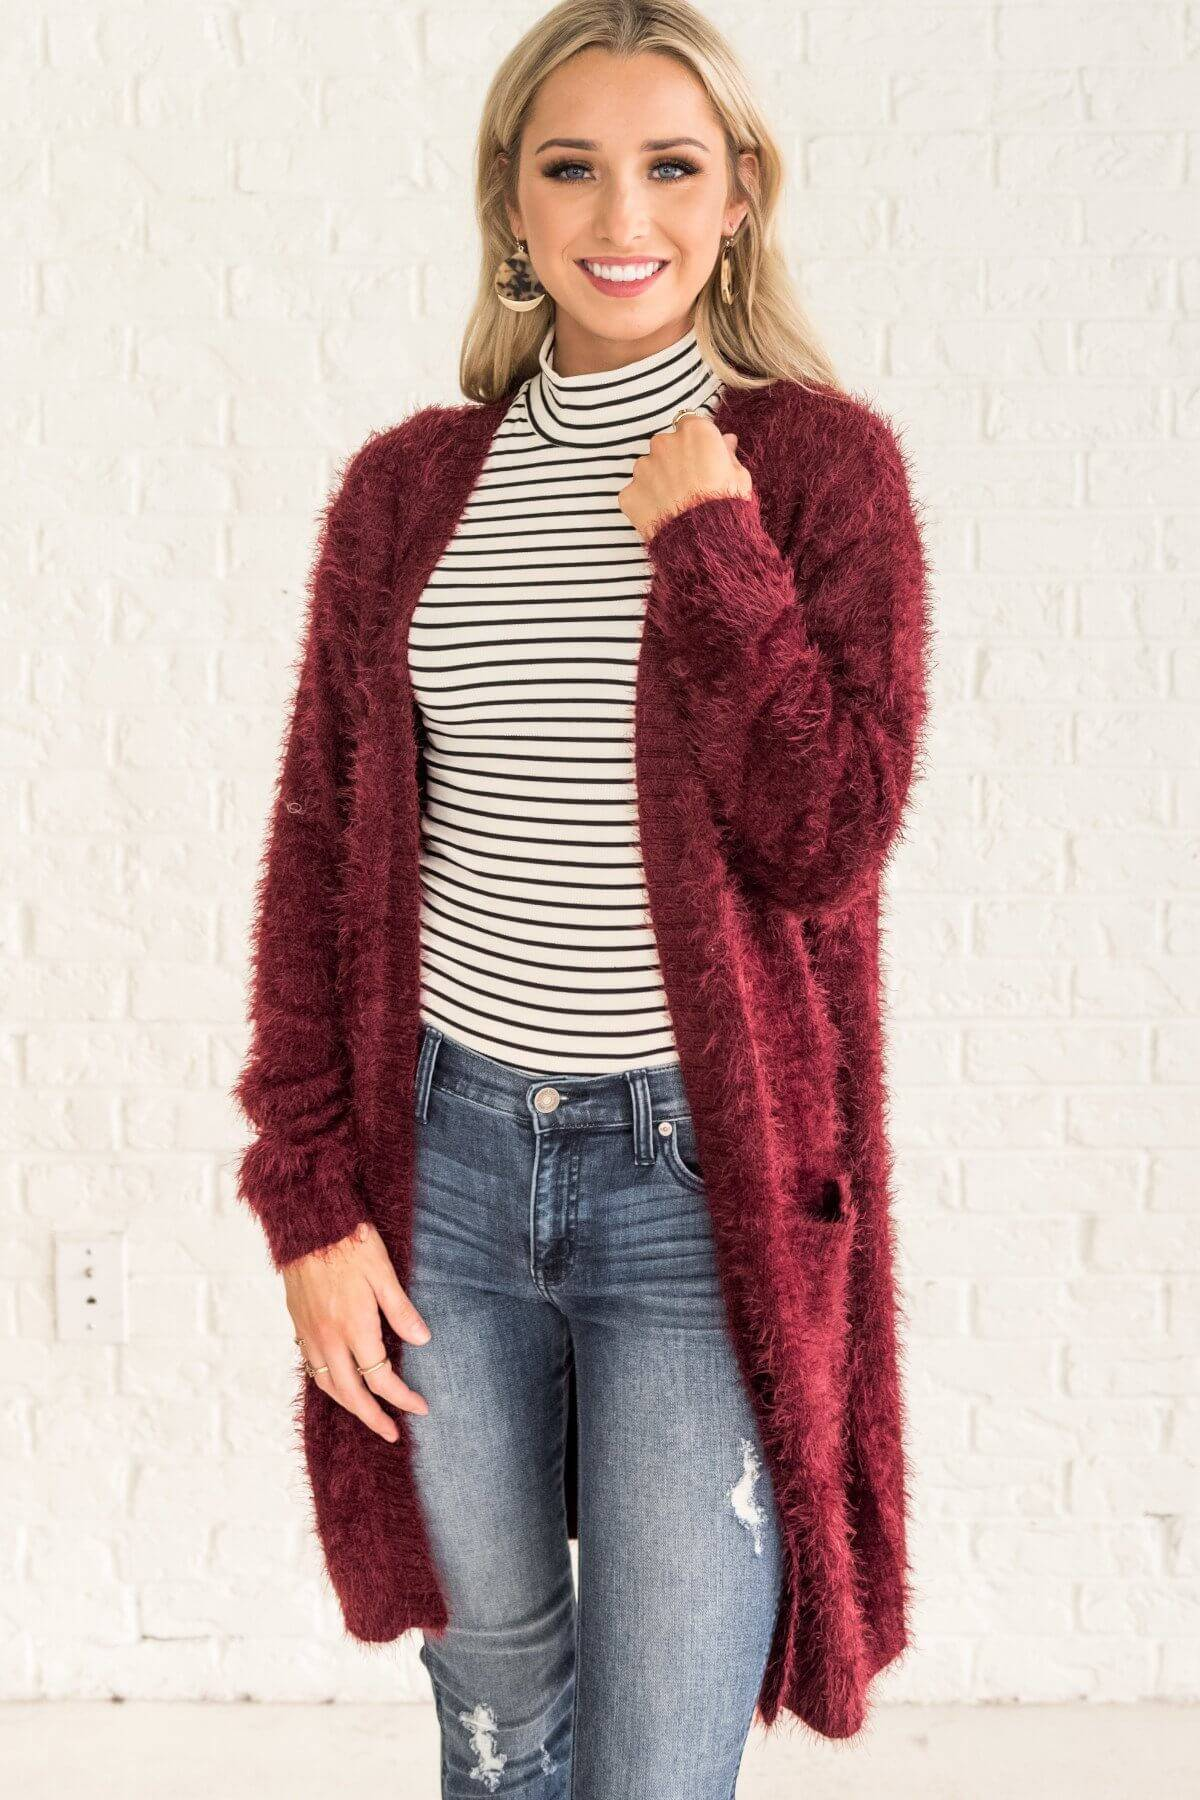 Burgundy Red Fuzzy Cardigan with Pockets for Women